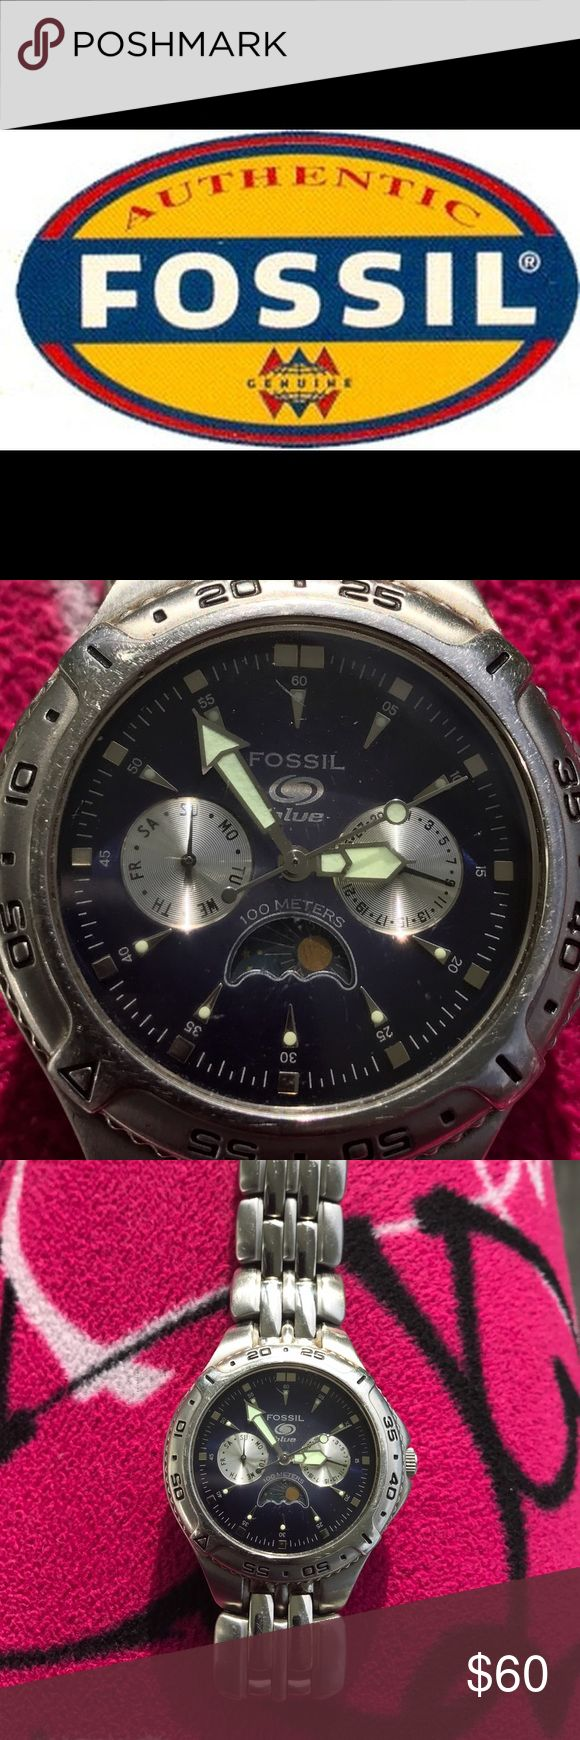 Fossil Blue Watch This is a great work watch for men or women fits small to large wrist links can be removed to make smaller don't have box price reflects this. Thanks Fossil Accessories Watches